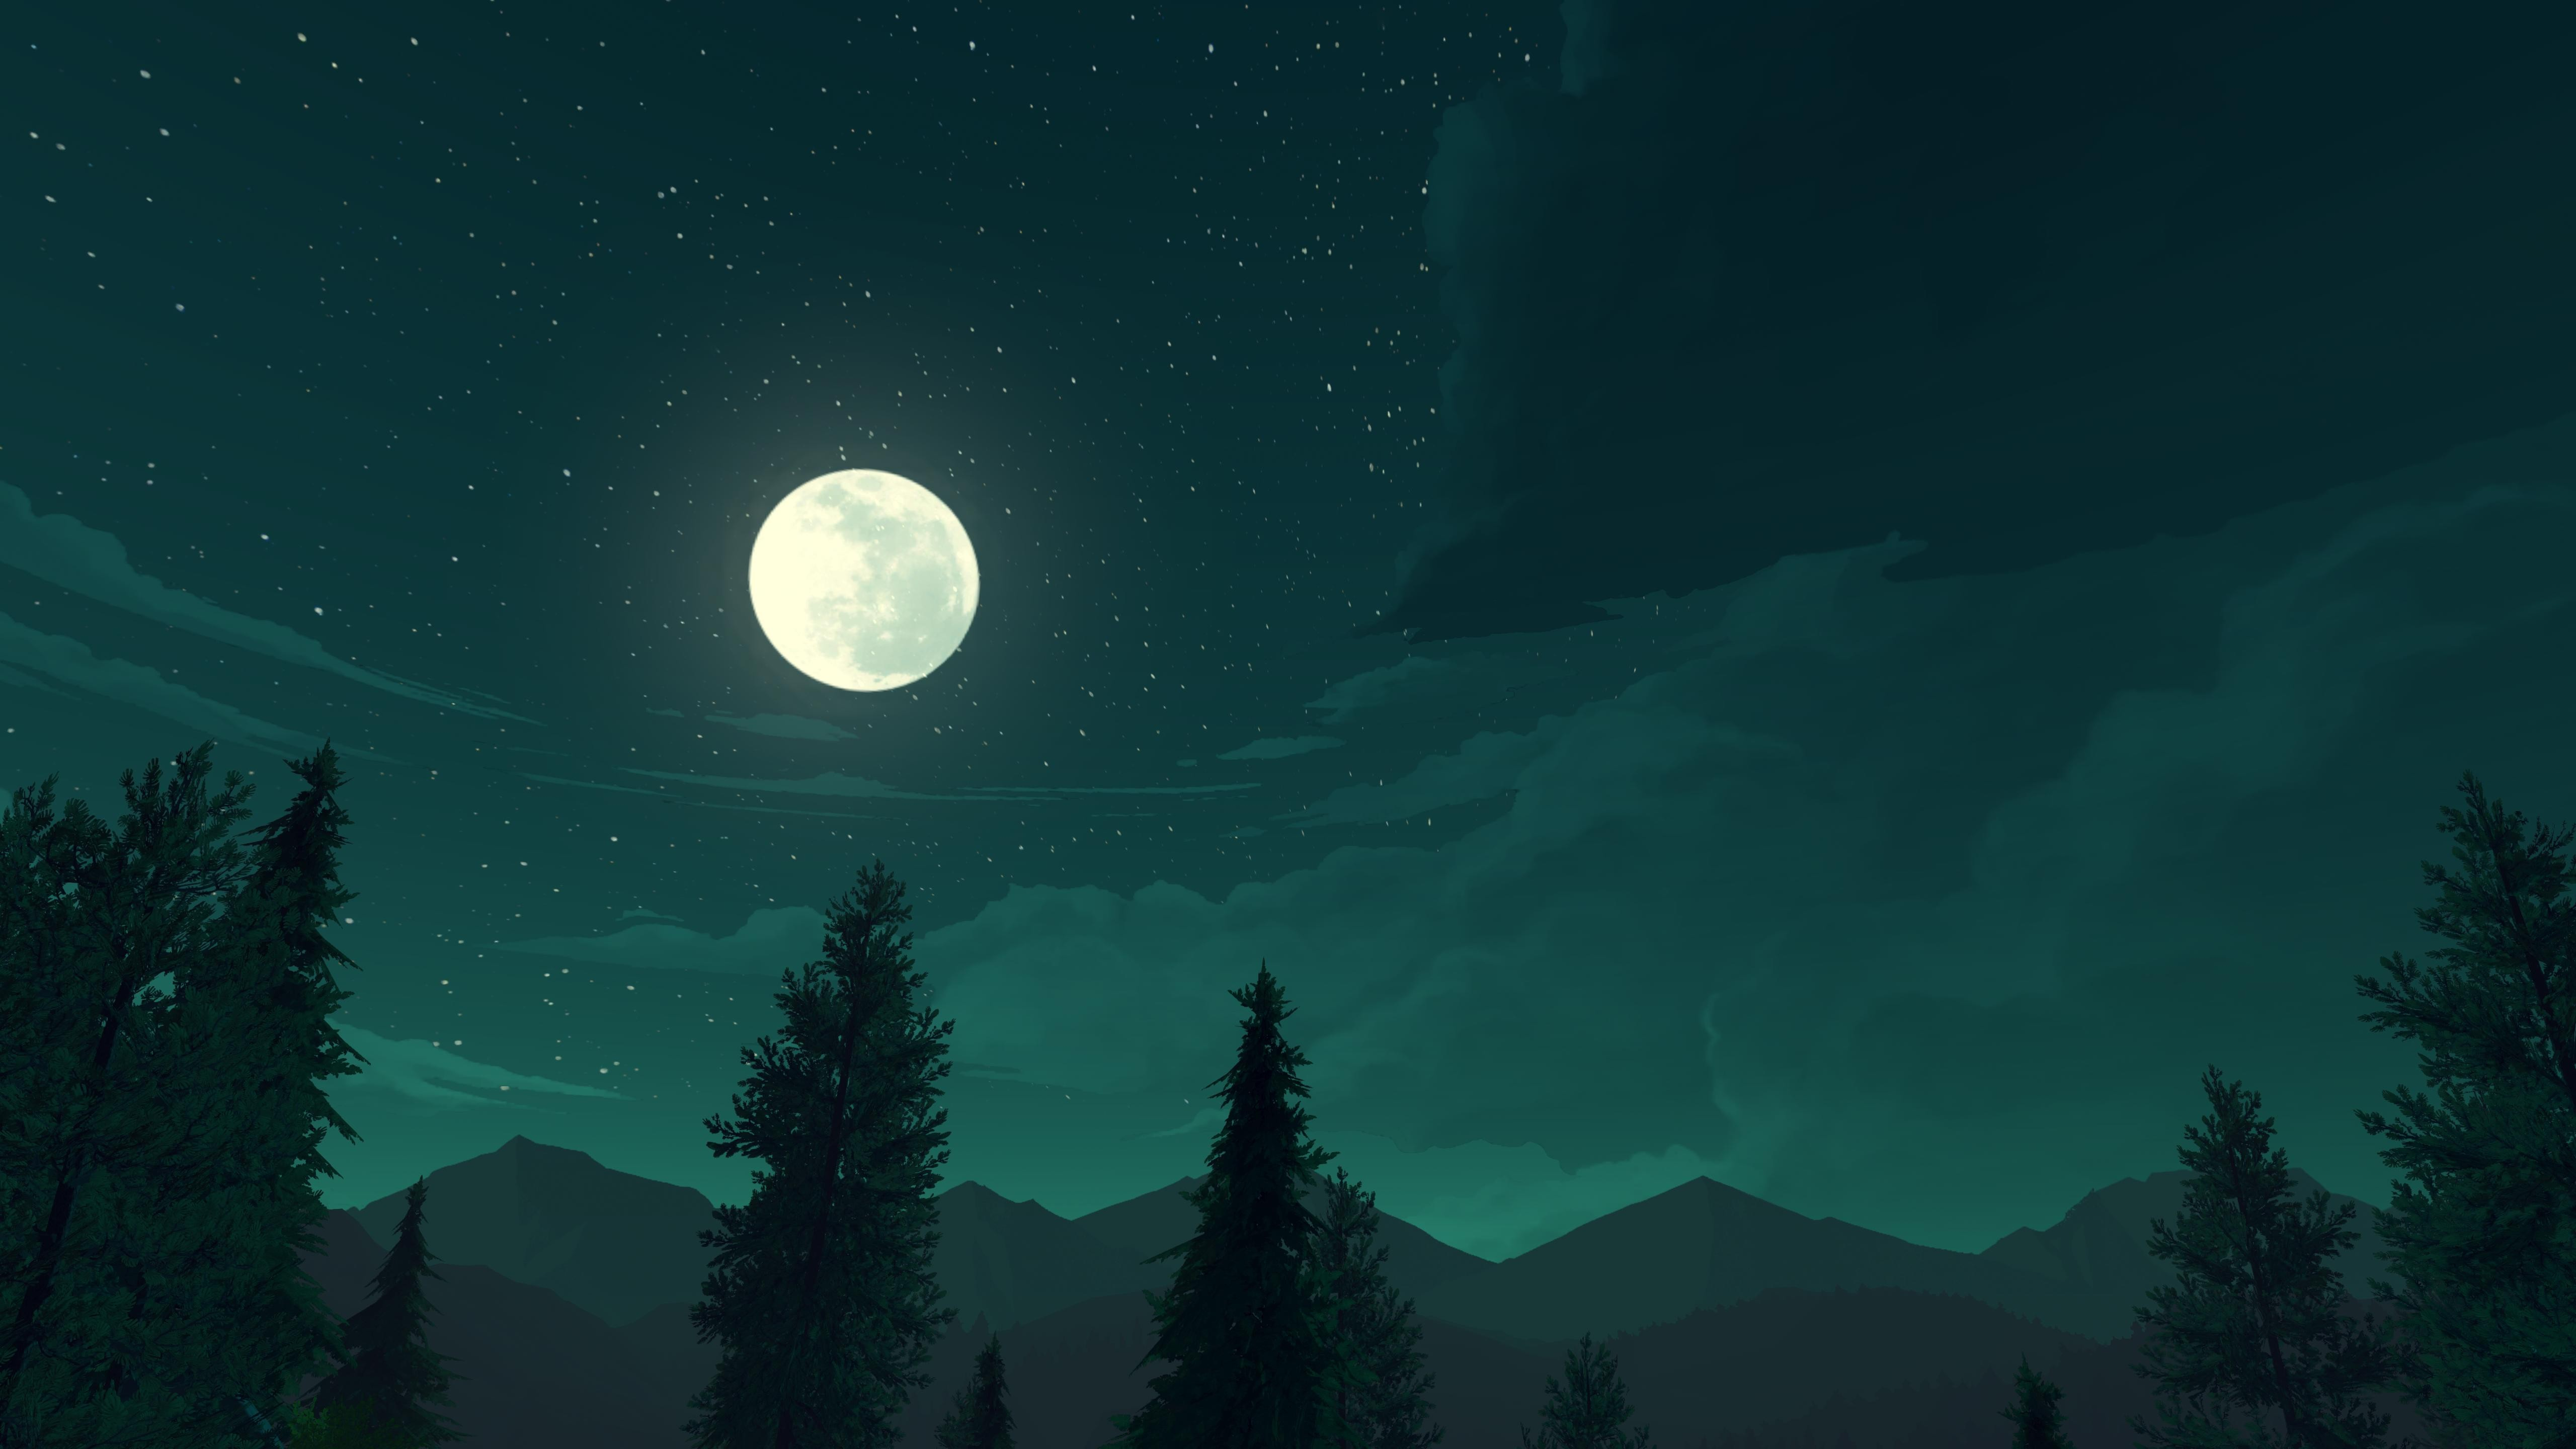 pc 4k firewatch ps4 games horror quest wallpapers xbox 5k resolution 2k wallpapershome fhd playstation forest desktop others ssd 8k